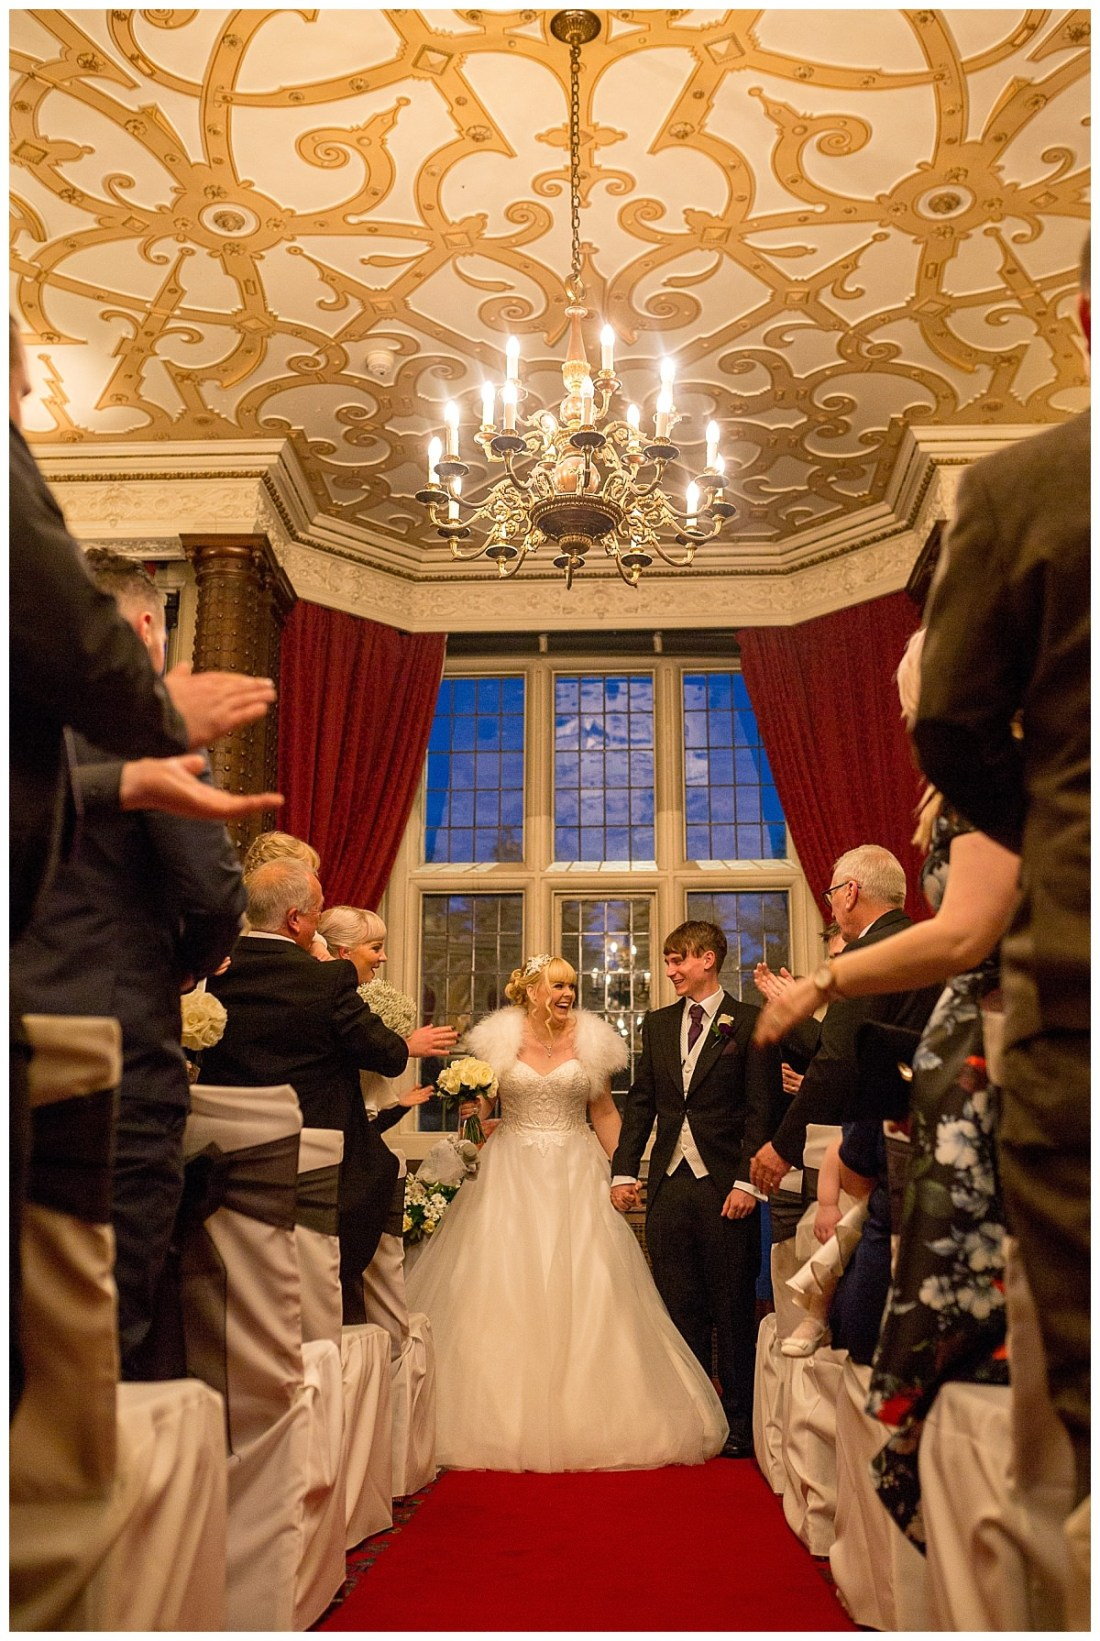 Bride and groom walking down the aisle at Crewe Hall